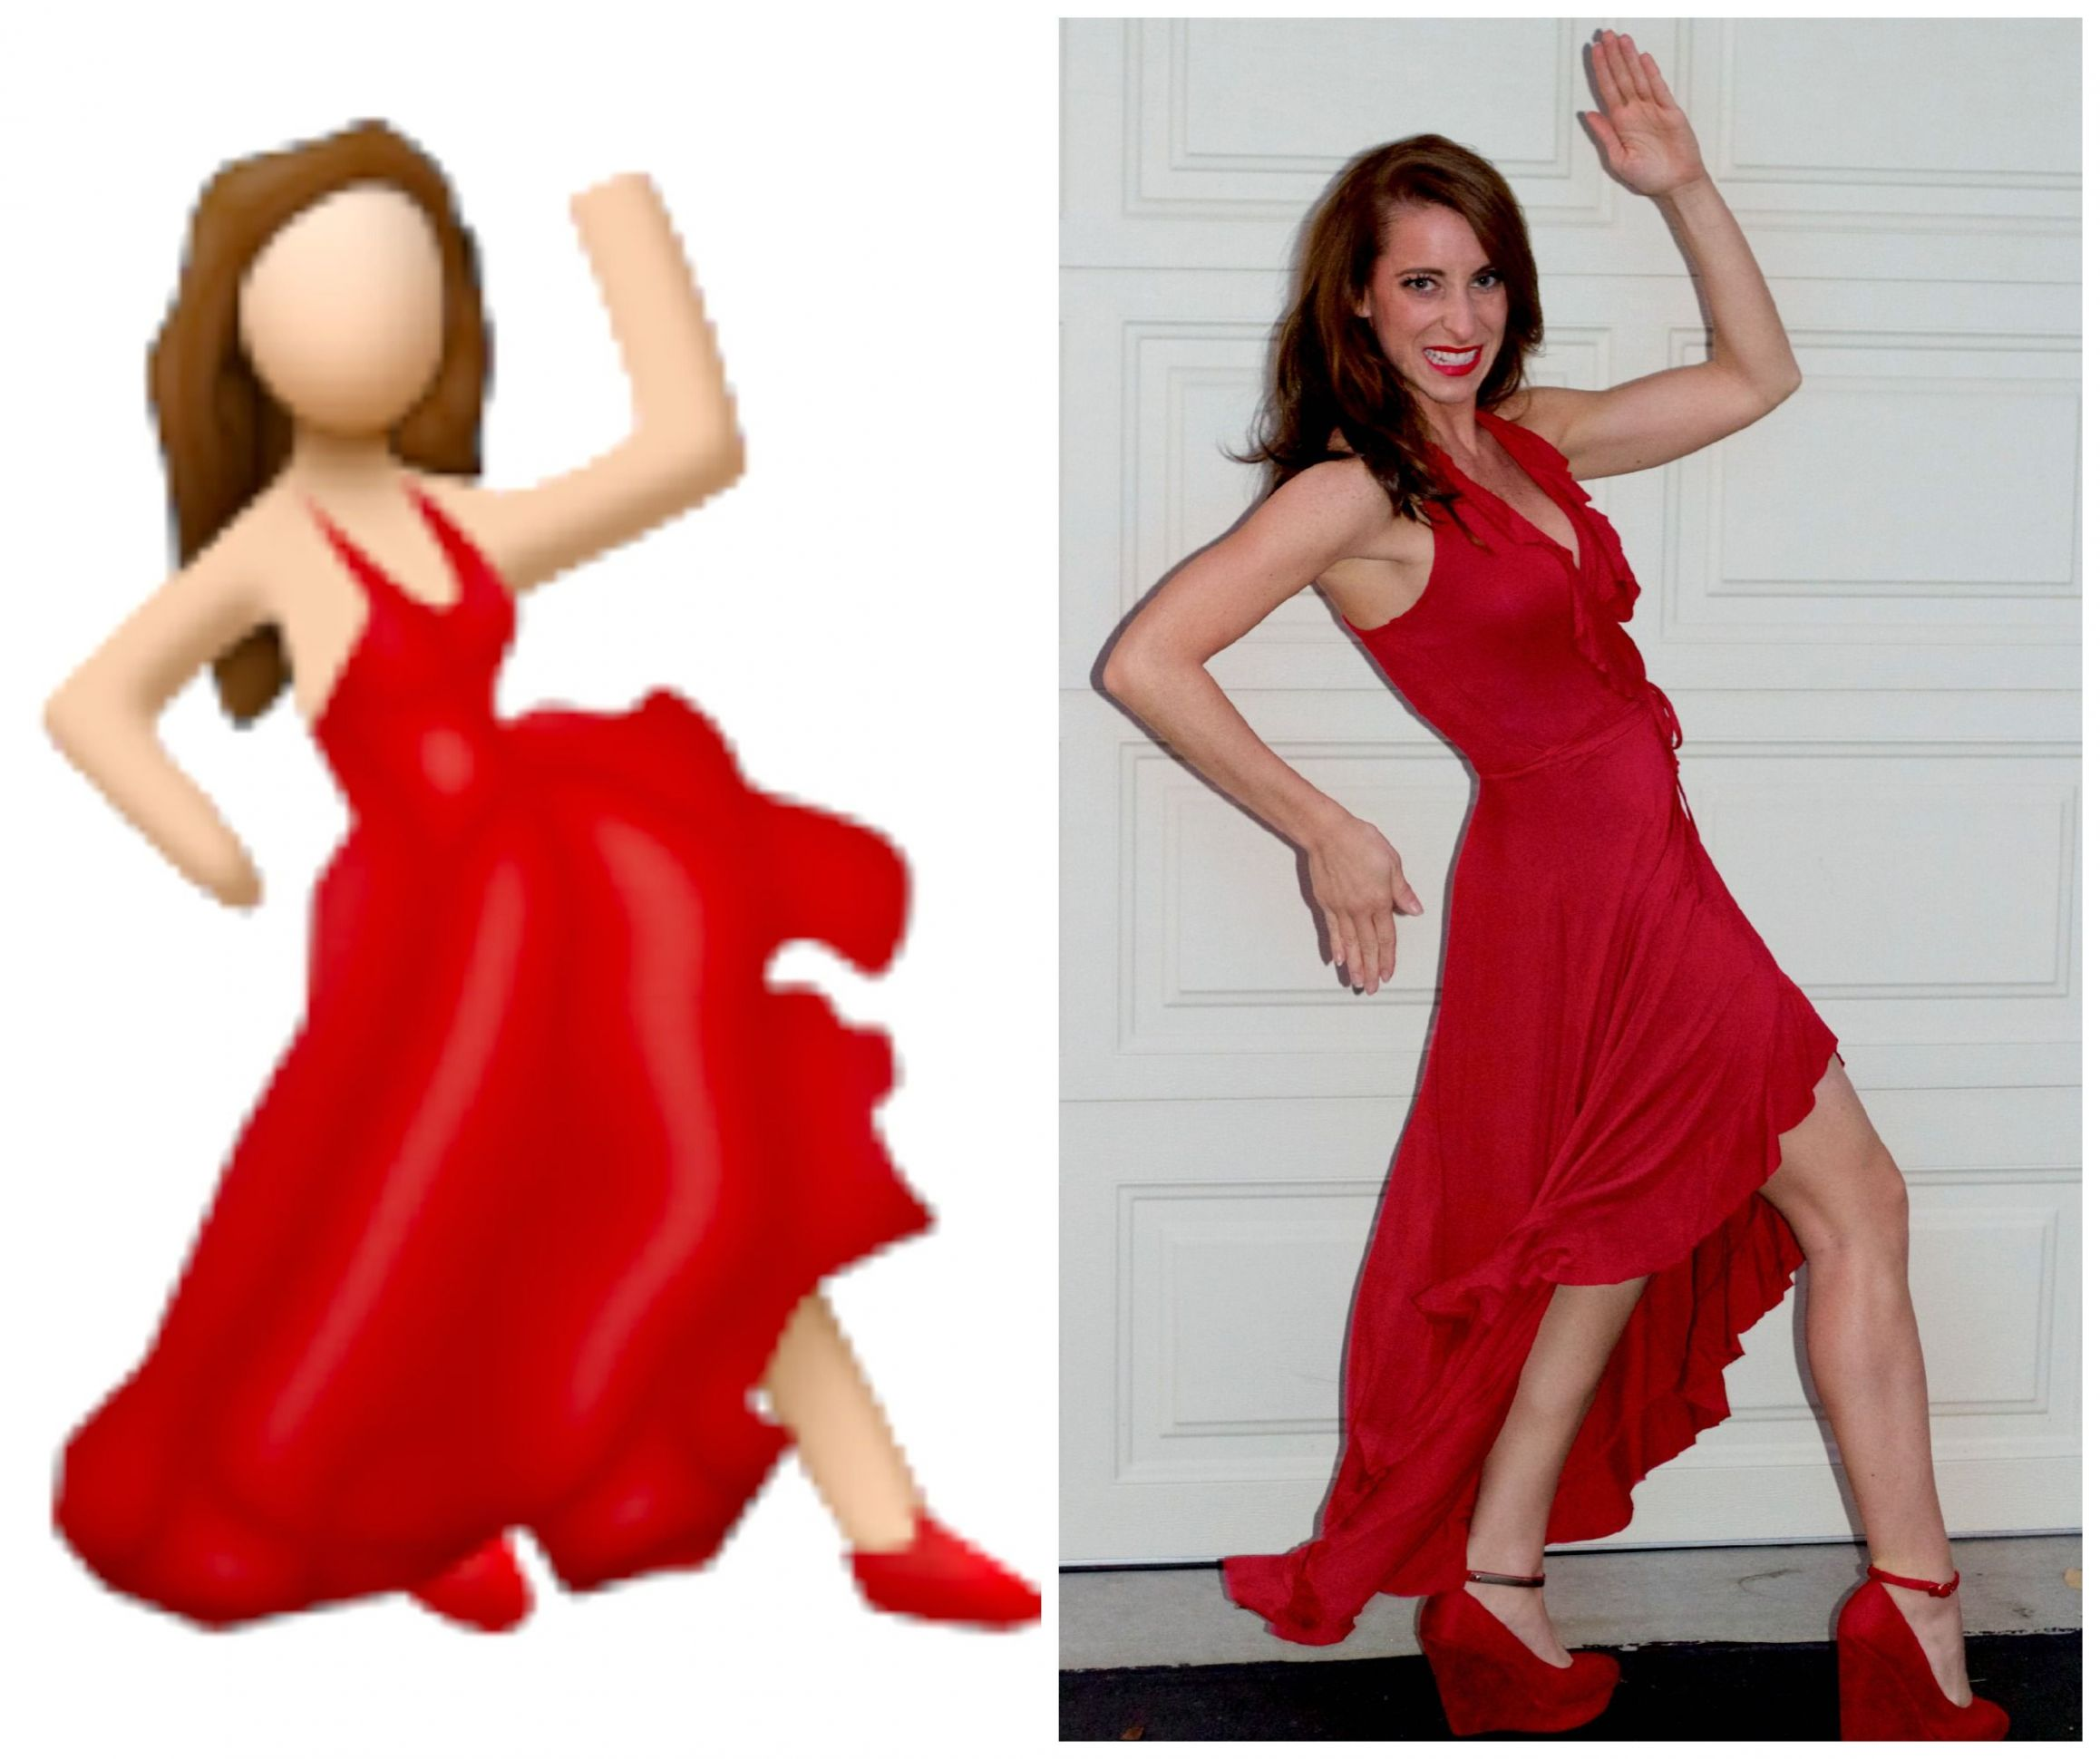 HOLLA-ween! (With images) | Red dress costume, Fancy dress ...